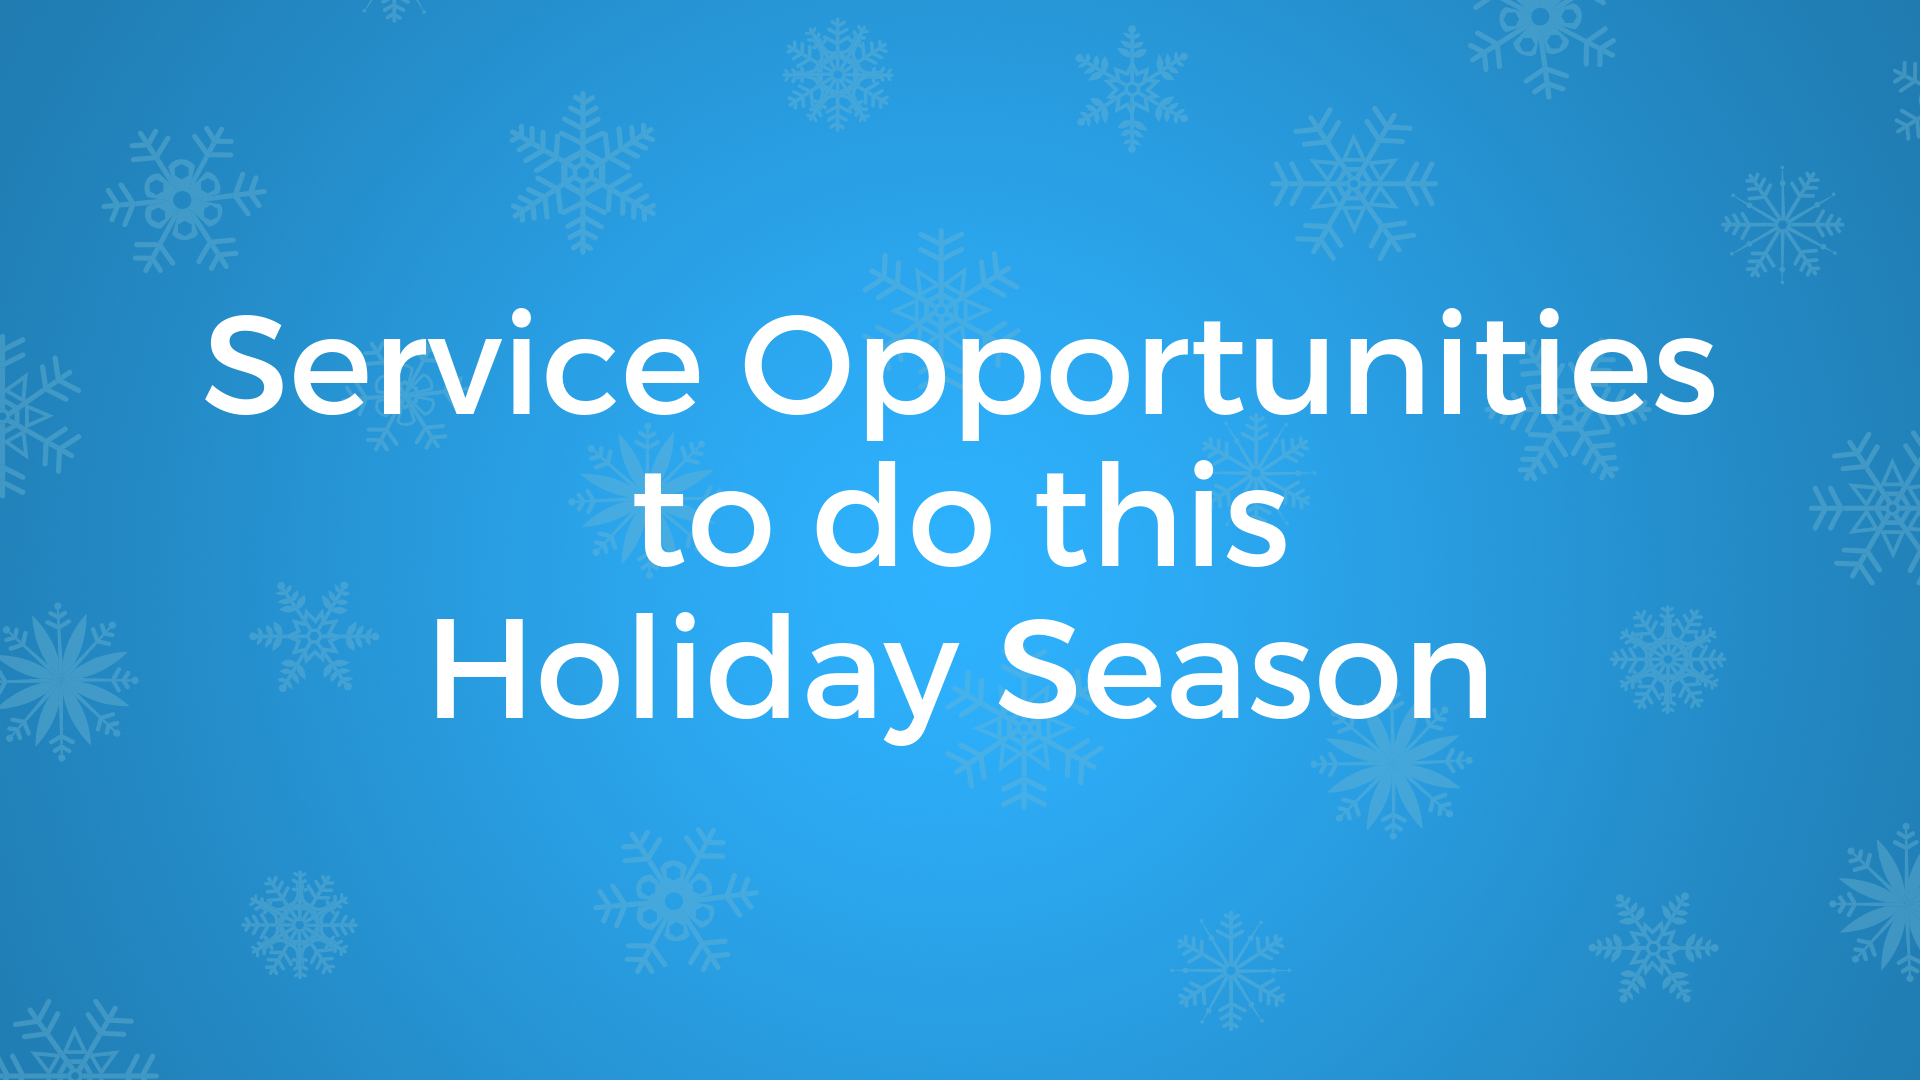 Service Opportunities to do this Holiday Season